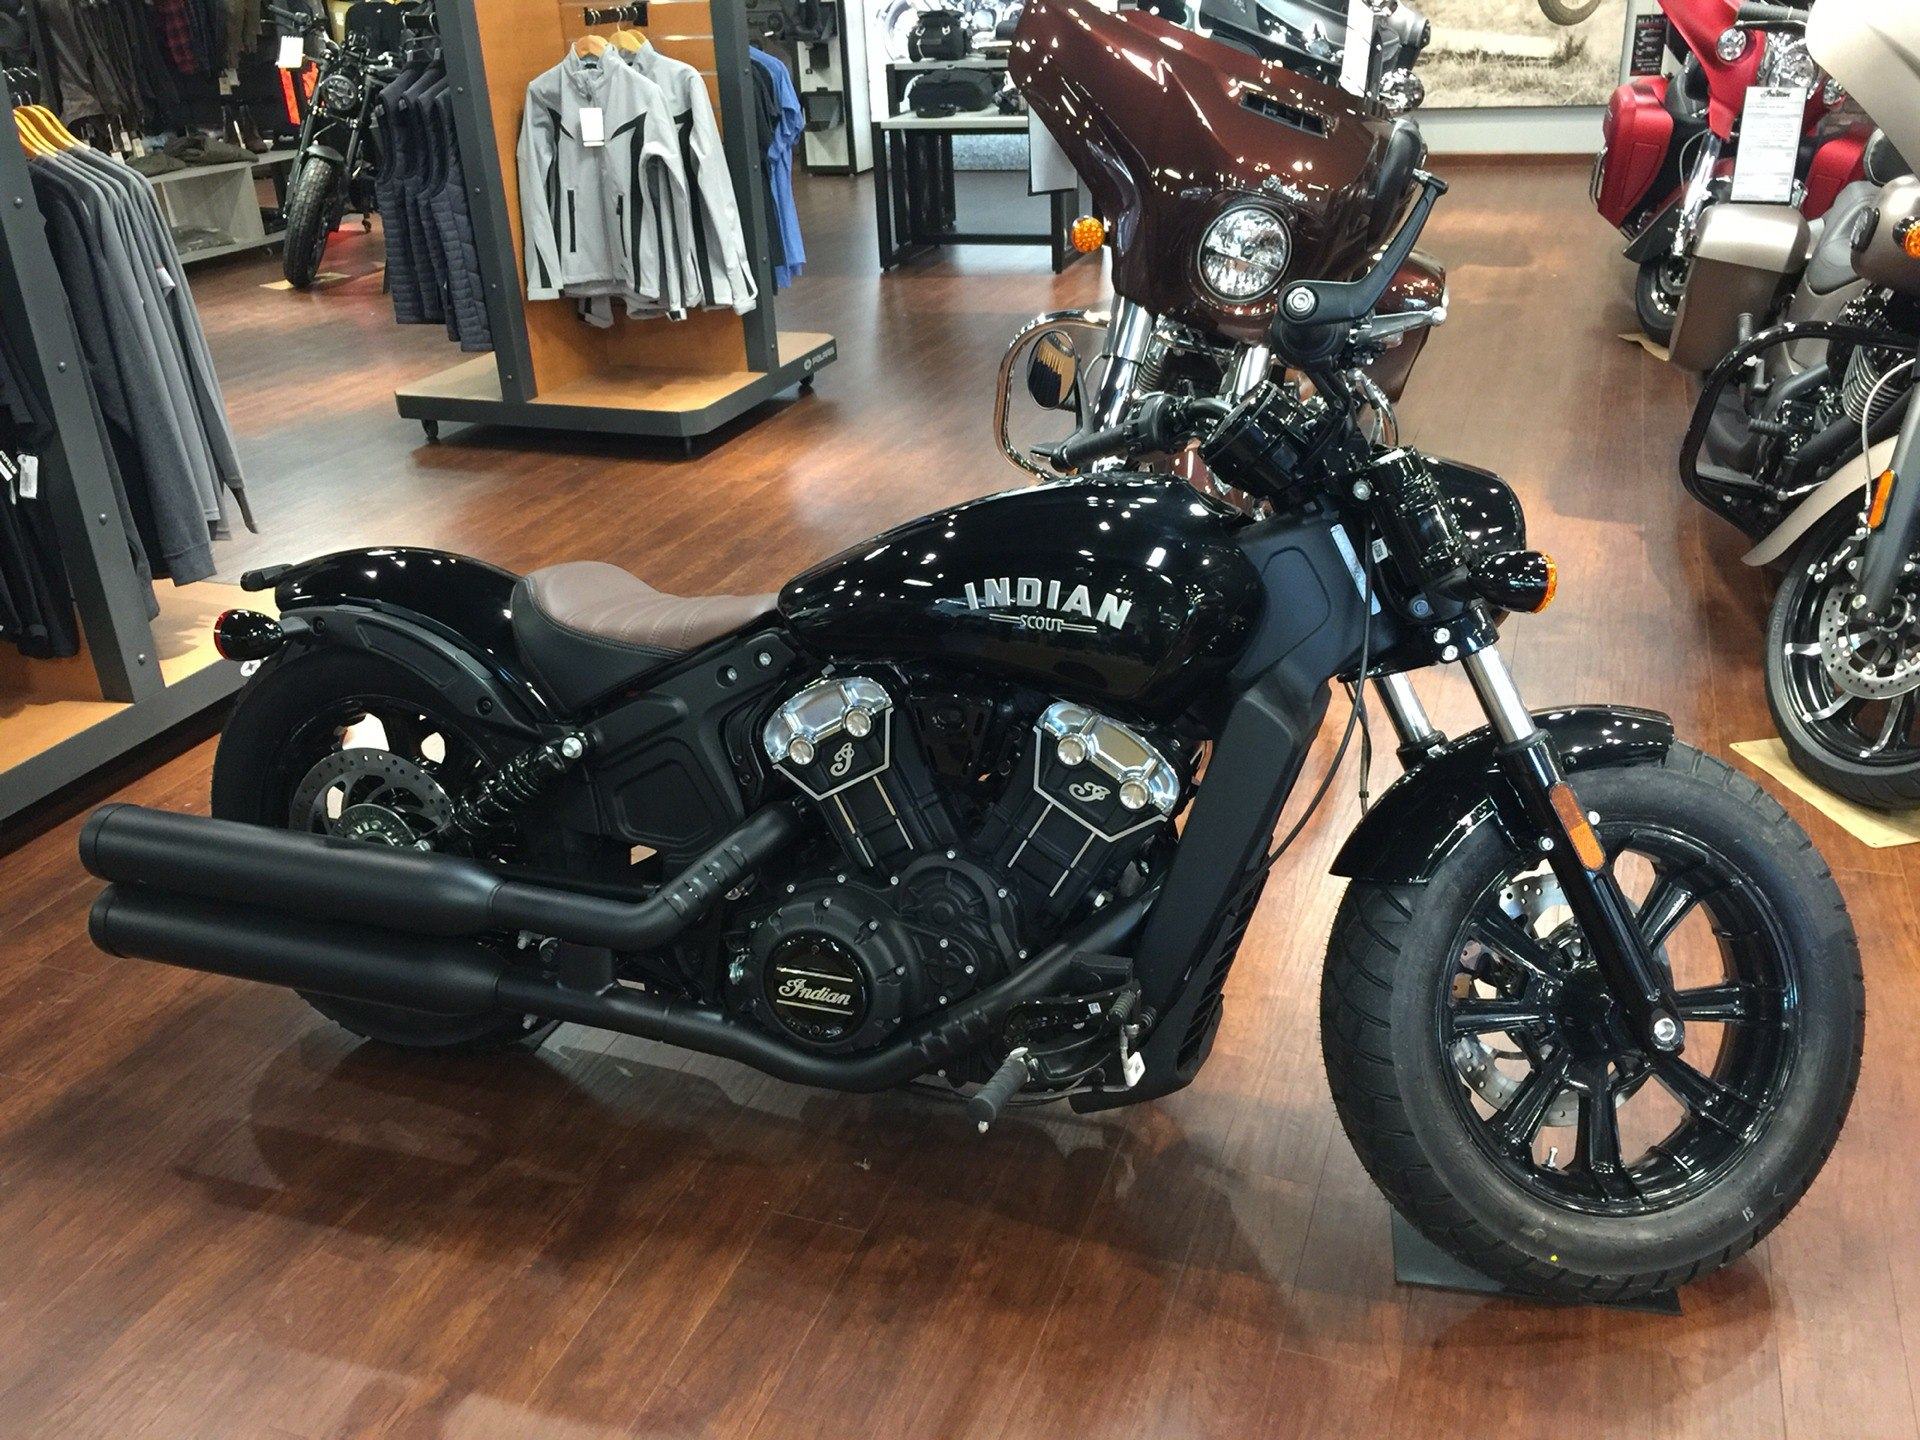 2019 Indian Scout Bobber ABS 1